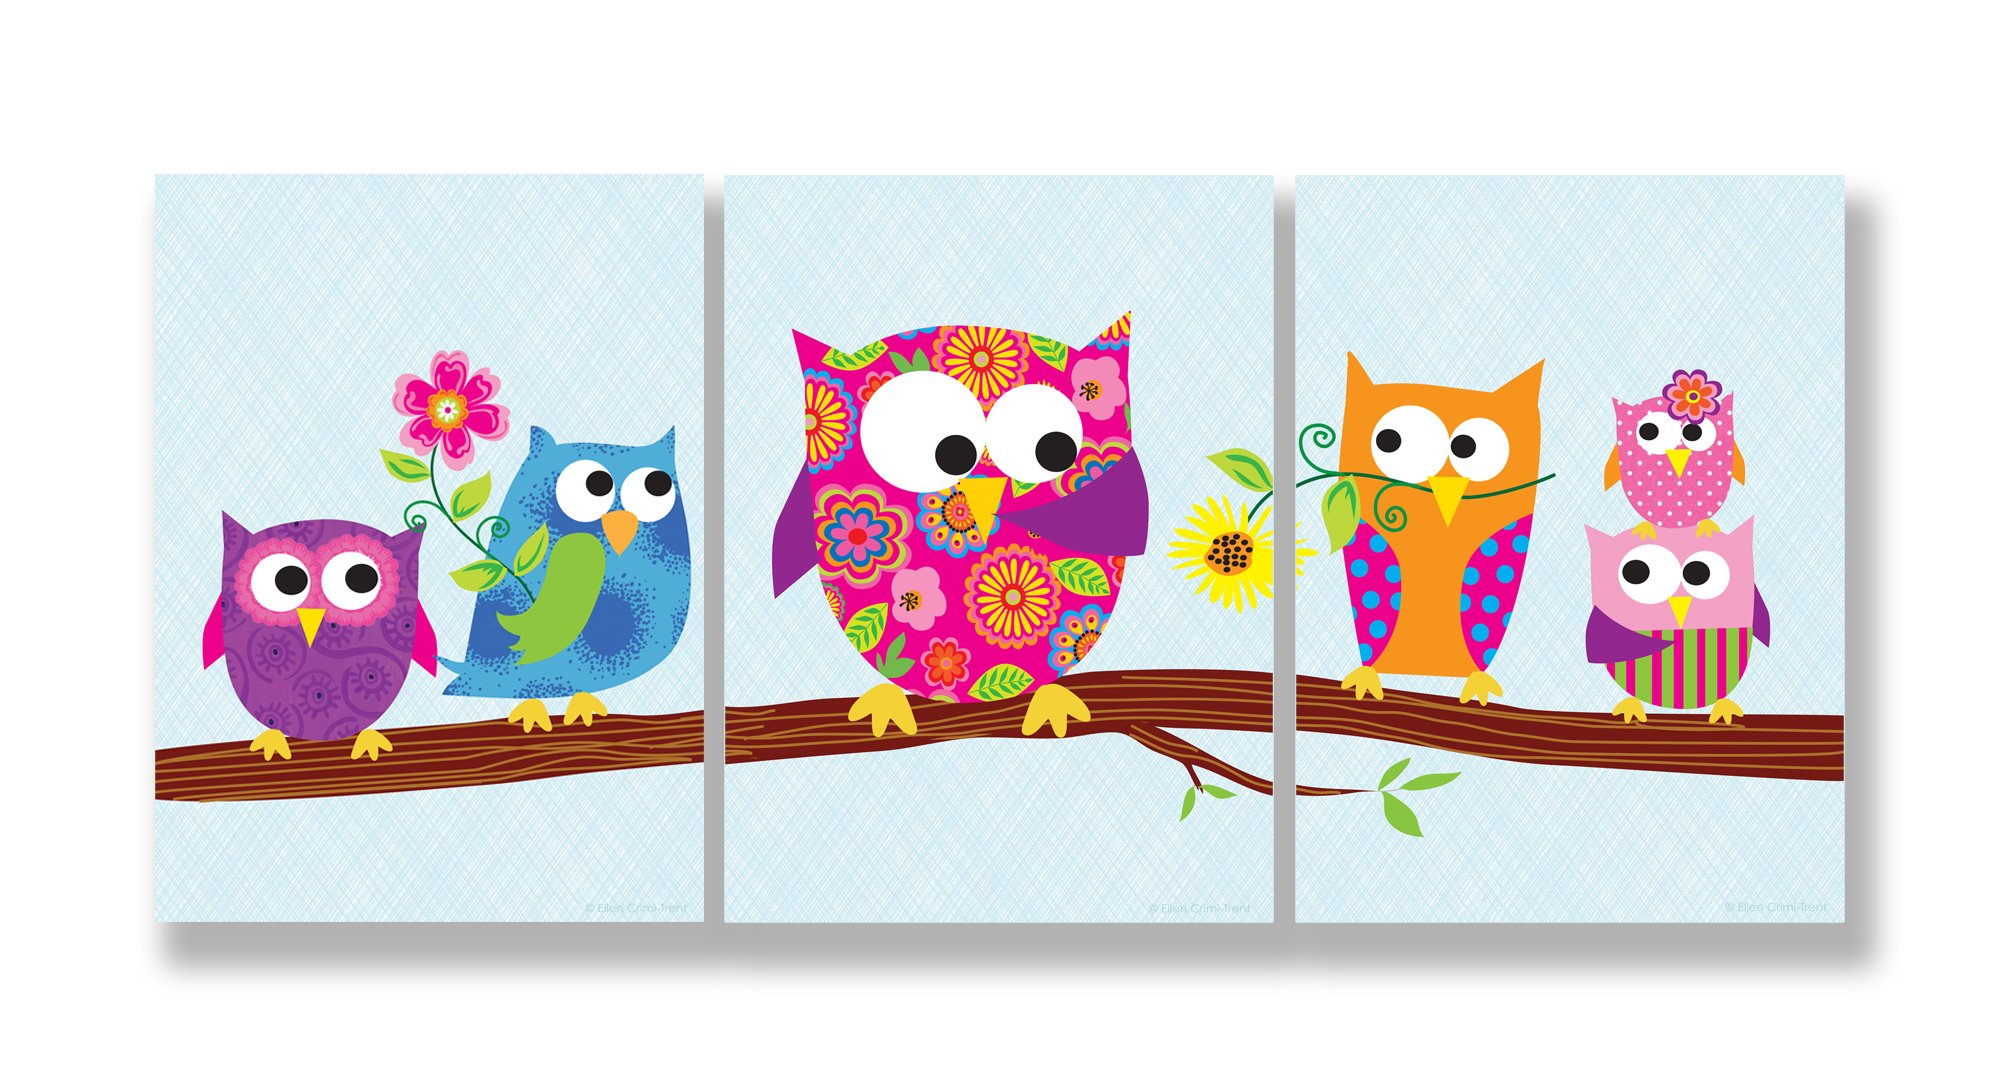 The Kids Room by Stupell Owls On A Branch 3-Pc. Rectangle Wall Plaque Set, 11 x 0.5 x 15, Proudly Made in USA